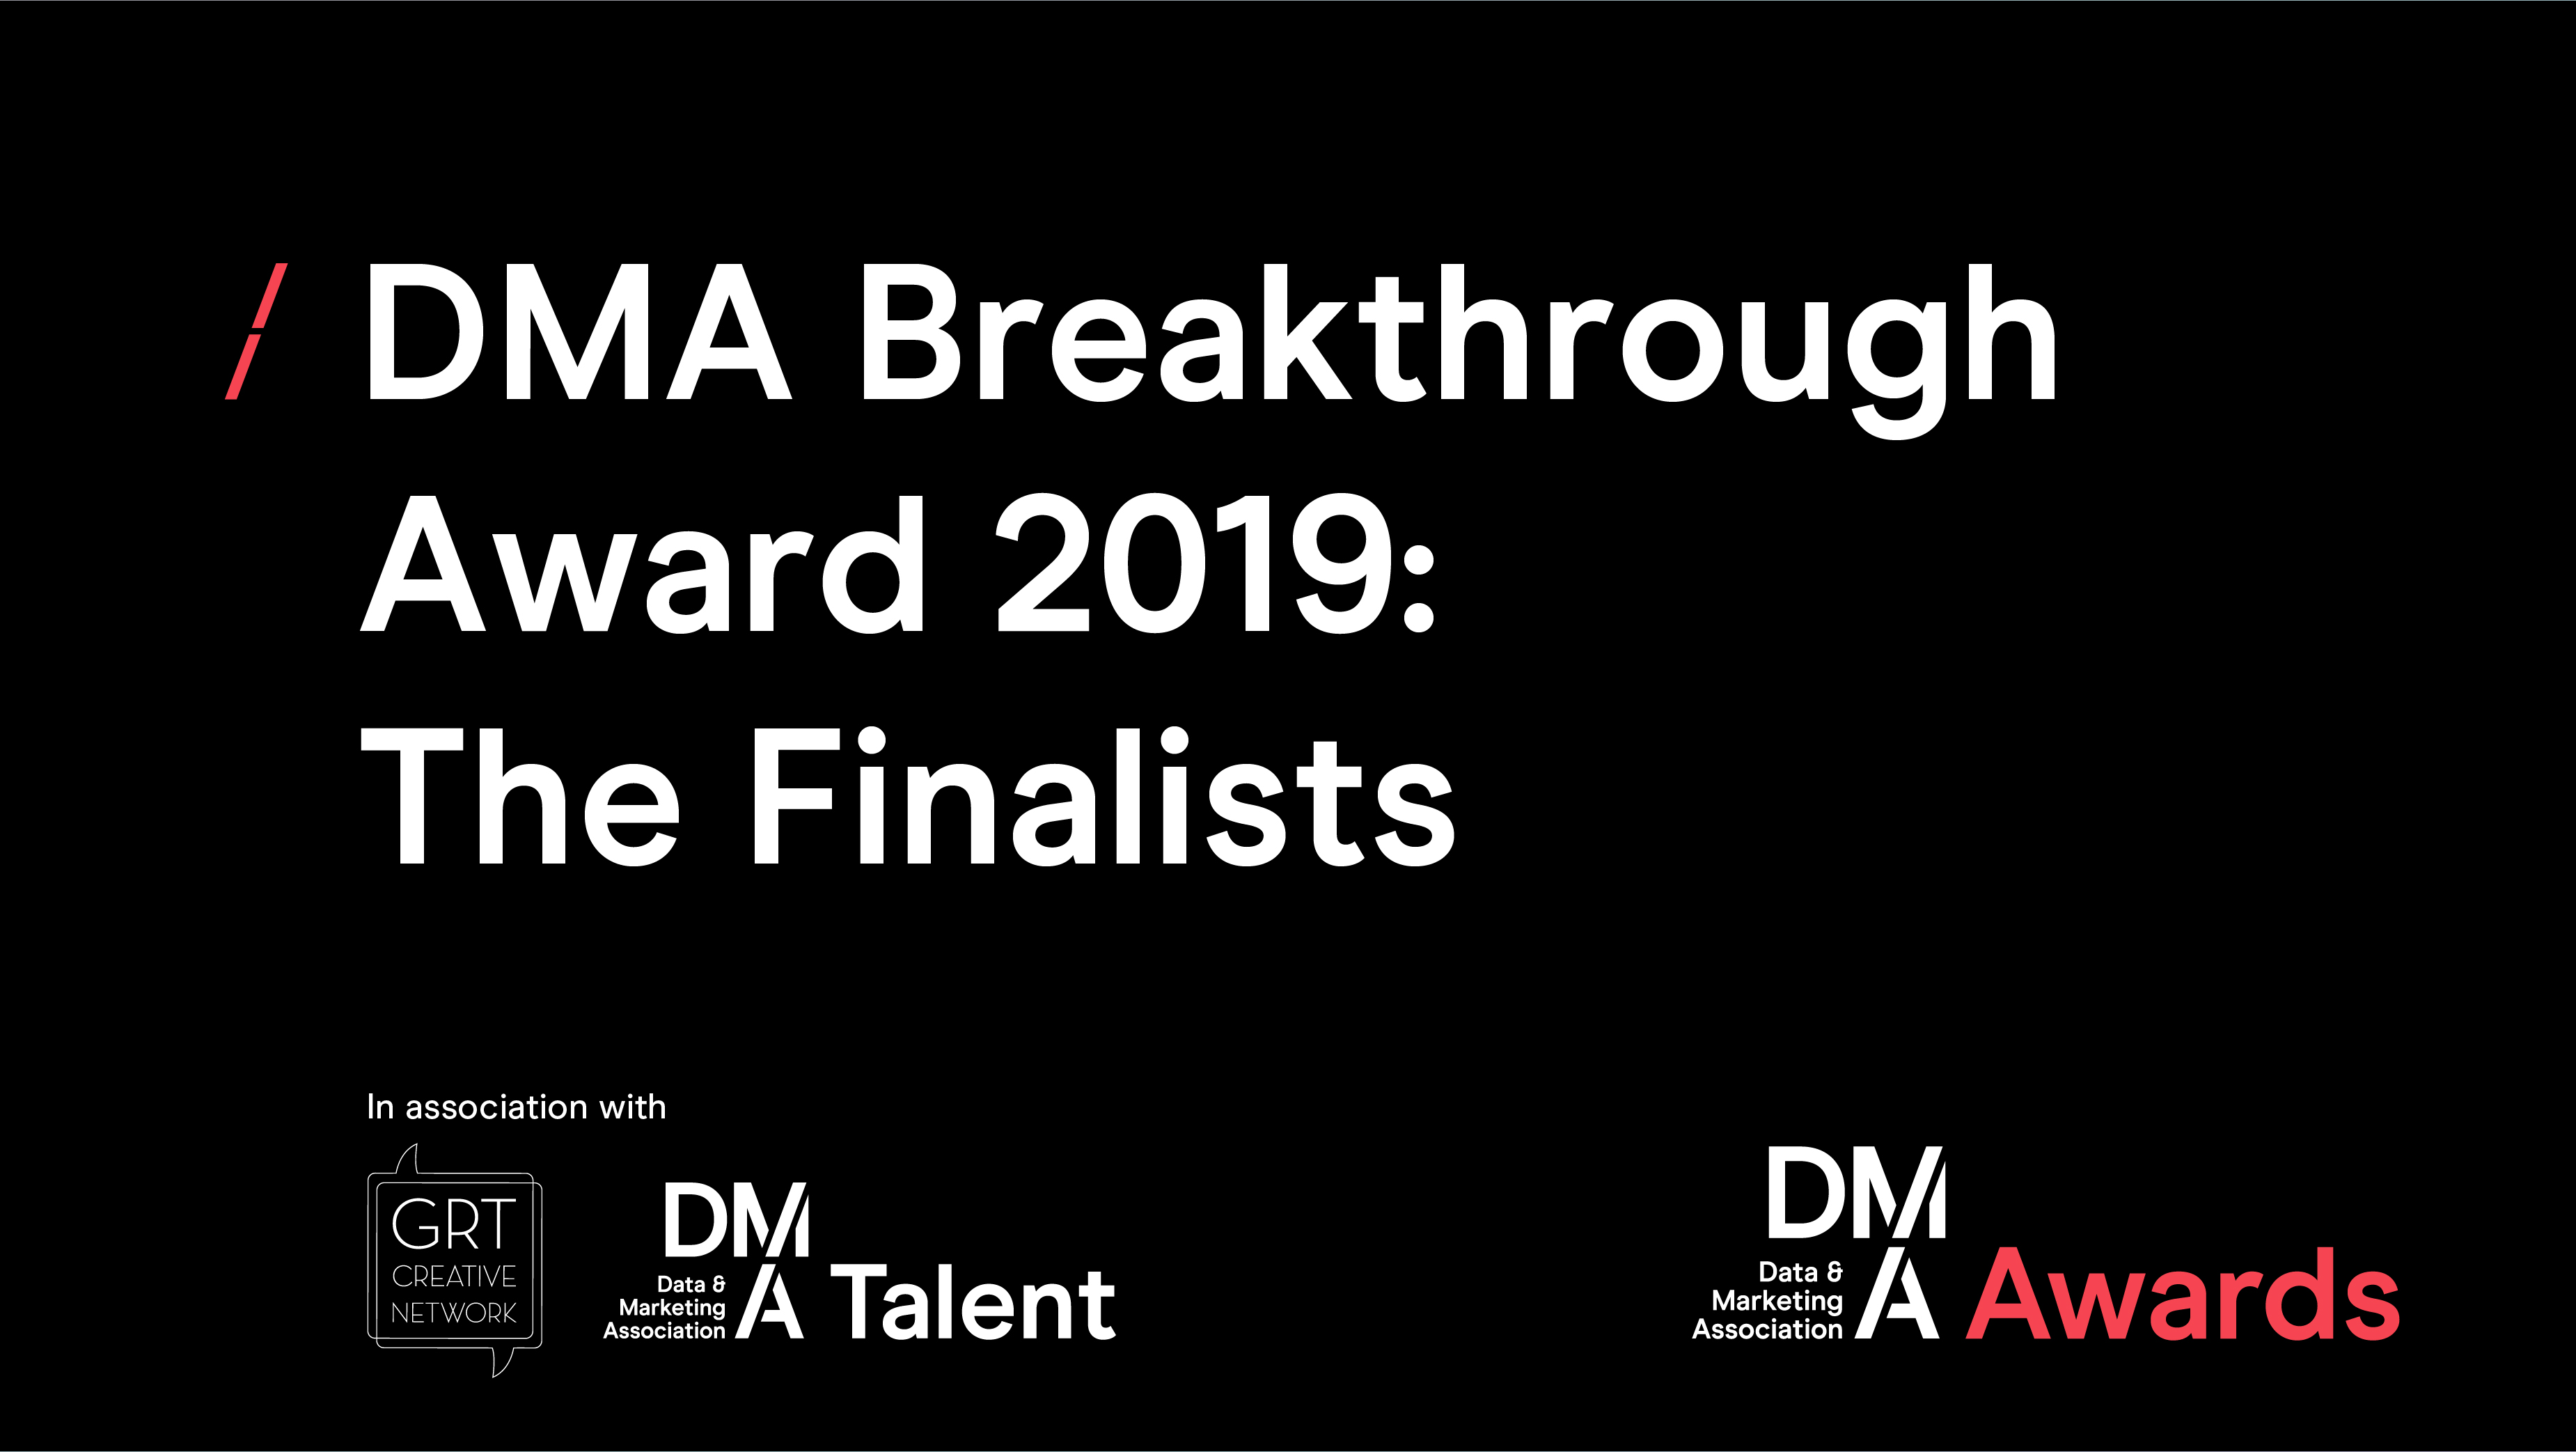 DMA Breakthrough Award Finalists 2019 without logo_General articles_General articles.jpg